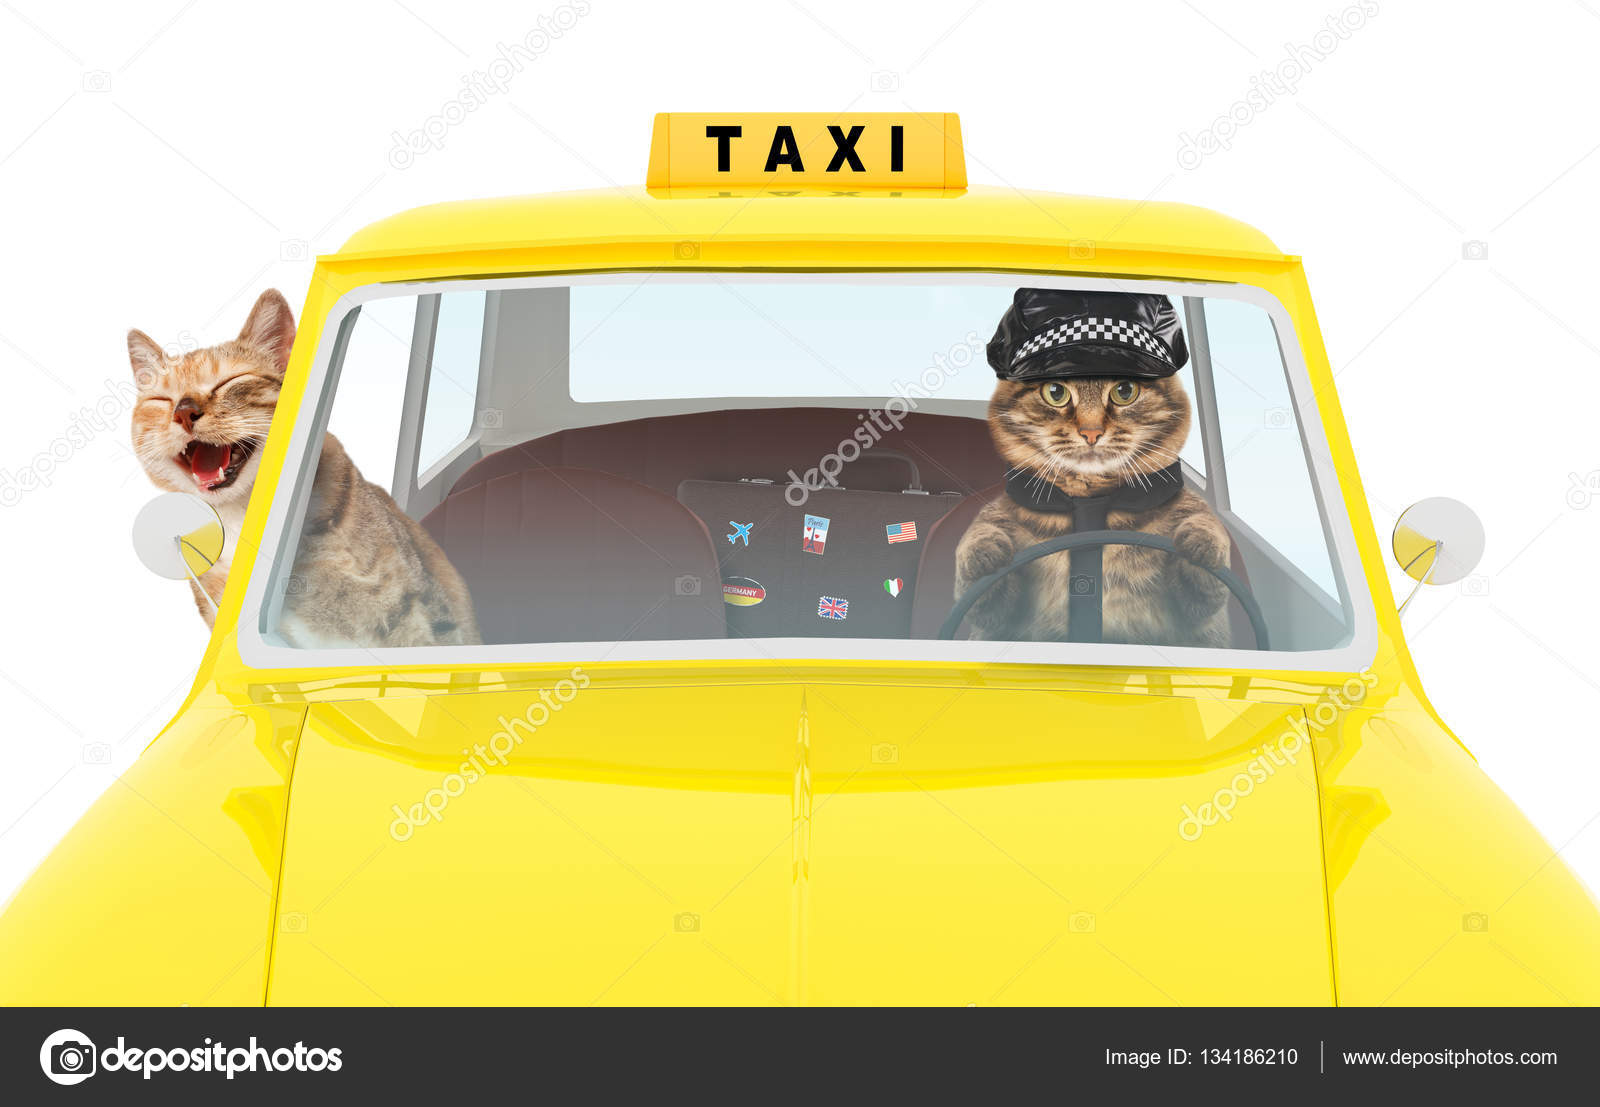 Stock Illustration Taxi Driver In The Car together with beachyellowcab in addition Taxi Driver in addition Minibus taxi clipart moreover Fotos De Archivo Taxista Image14436793. on cartoon taxi driver